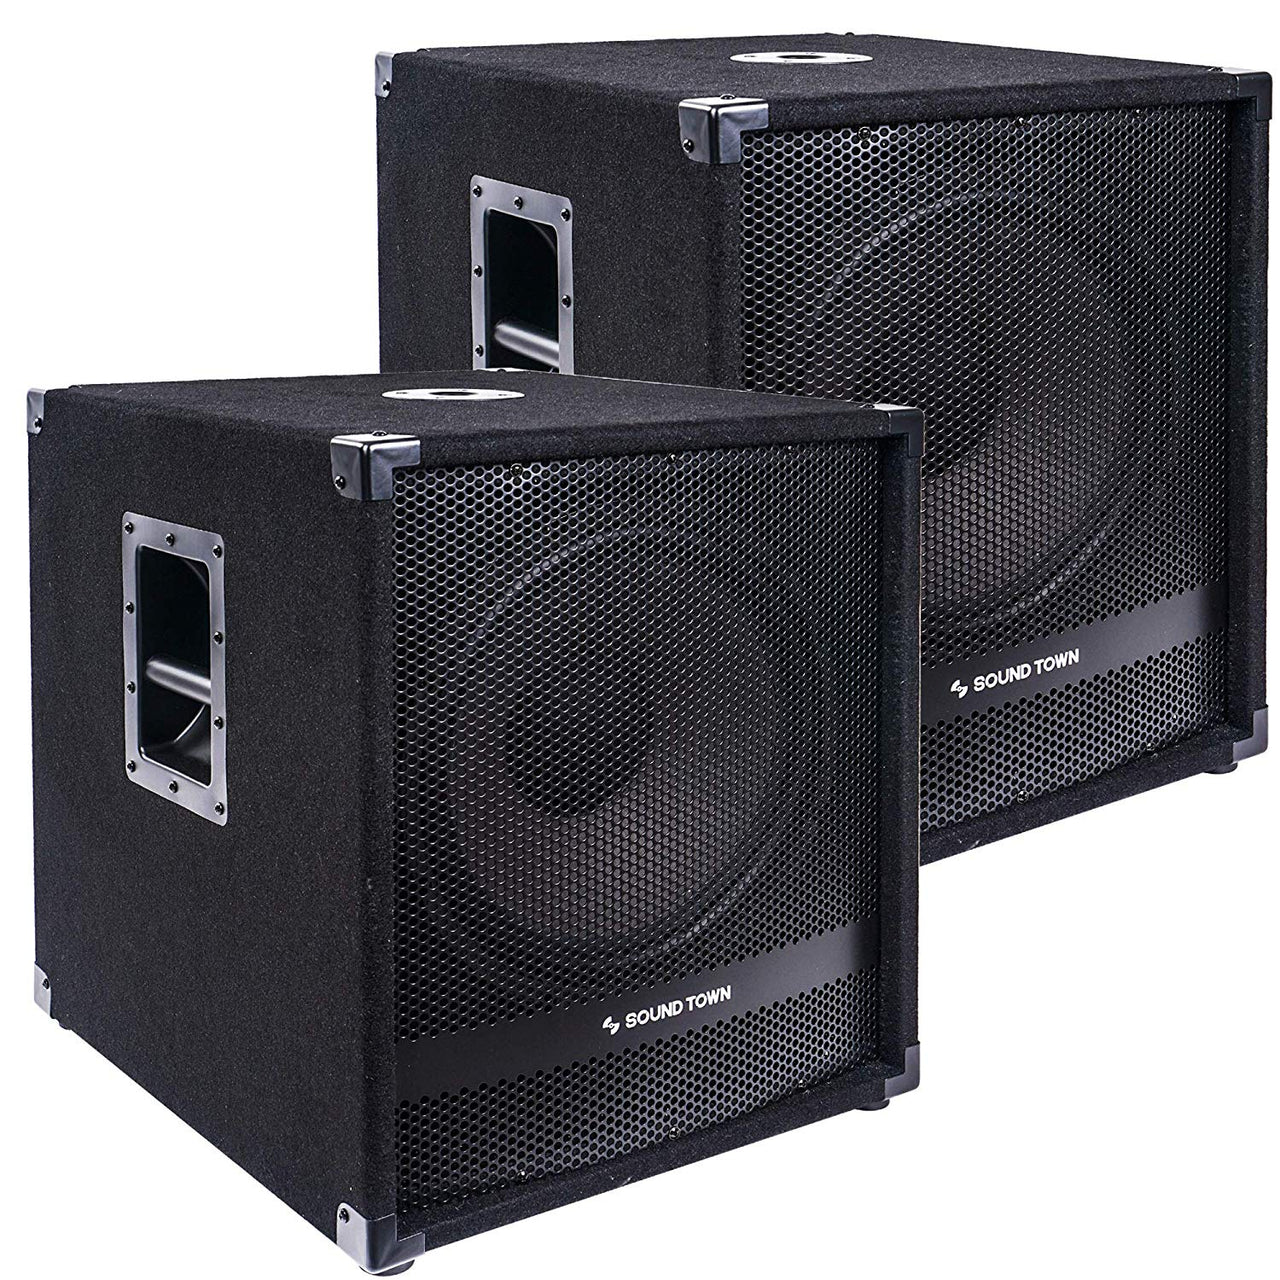 "METIS-15SPW-PAIR<br/>2-Pack METIS Series 15"" 1600 Watts Powered Subwoofers with DSP, DJ PA Pro Audio Sub with 4-inch Voice Coil"